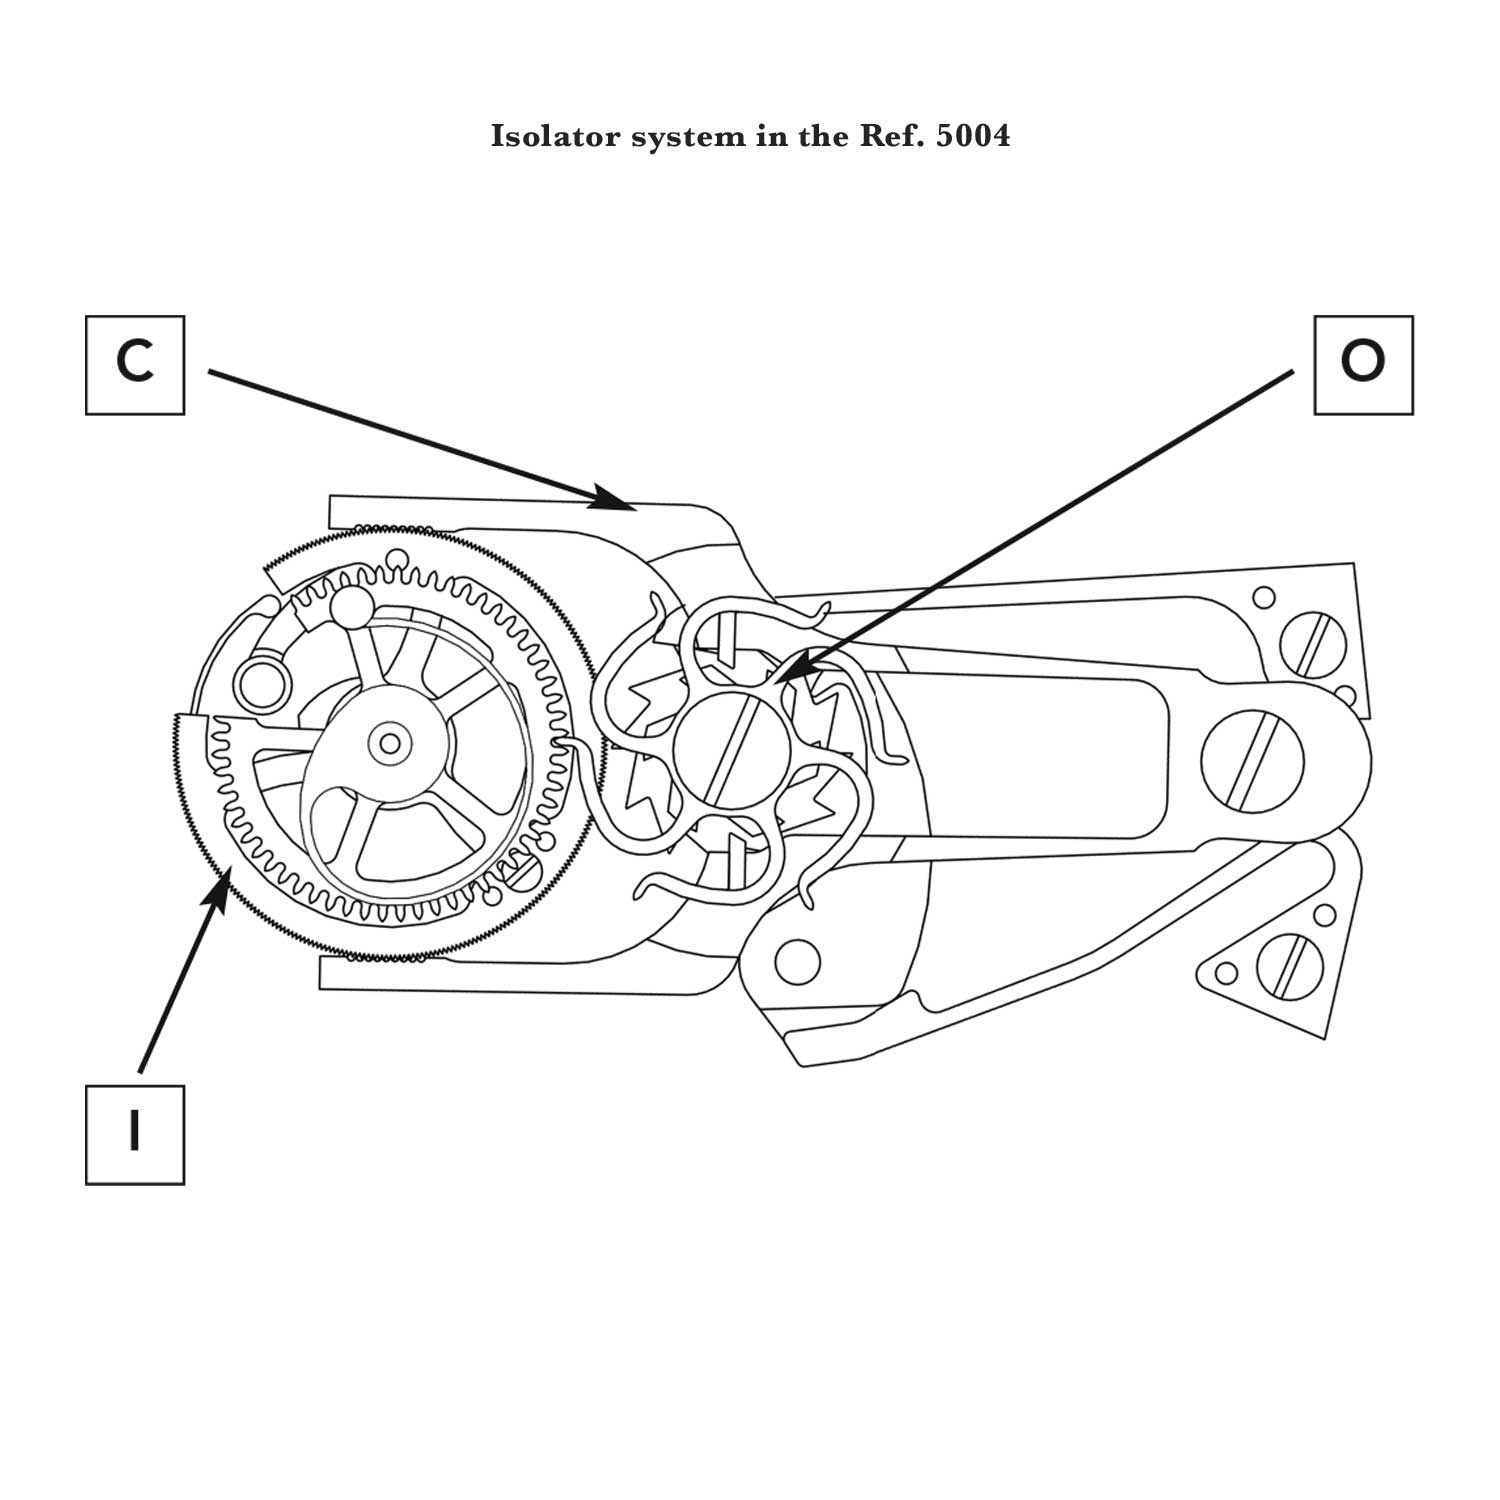 Isolator system in the Ref. 5004